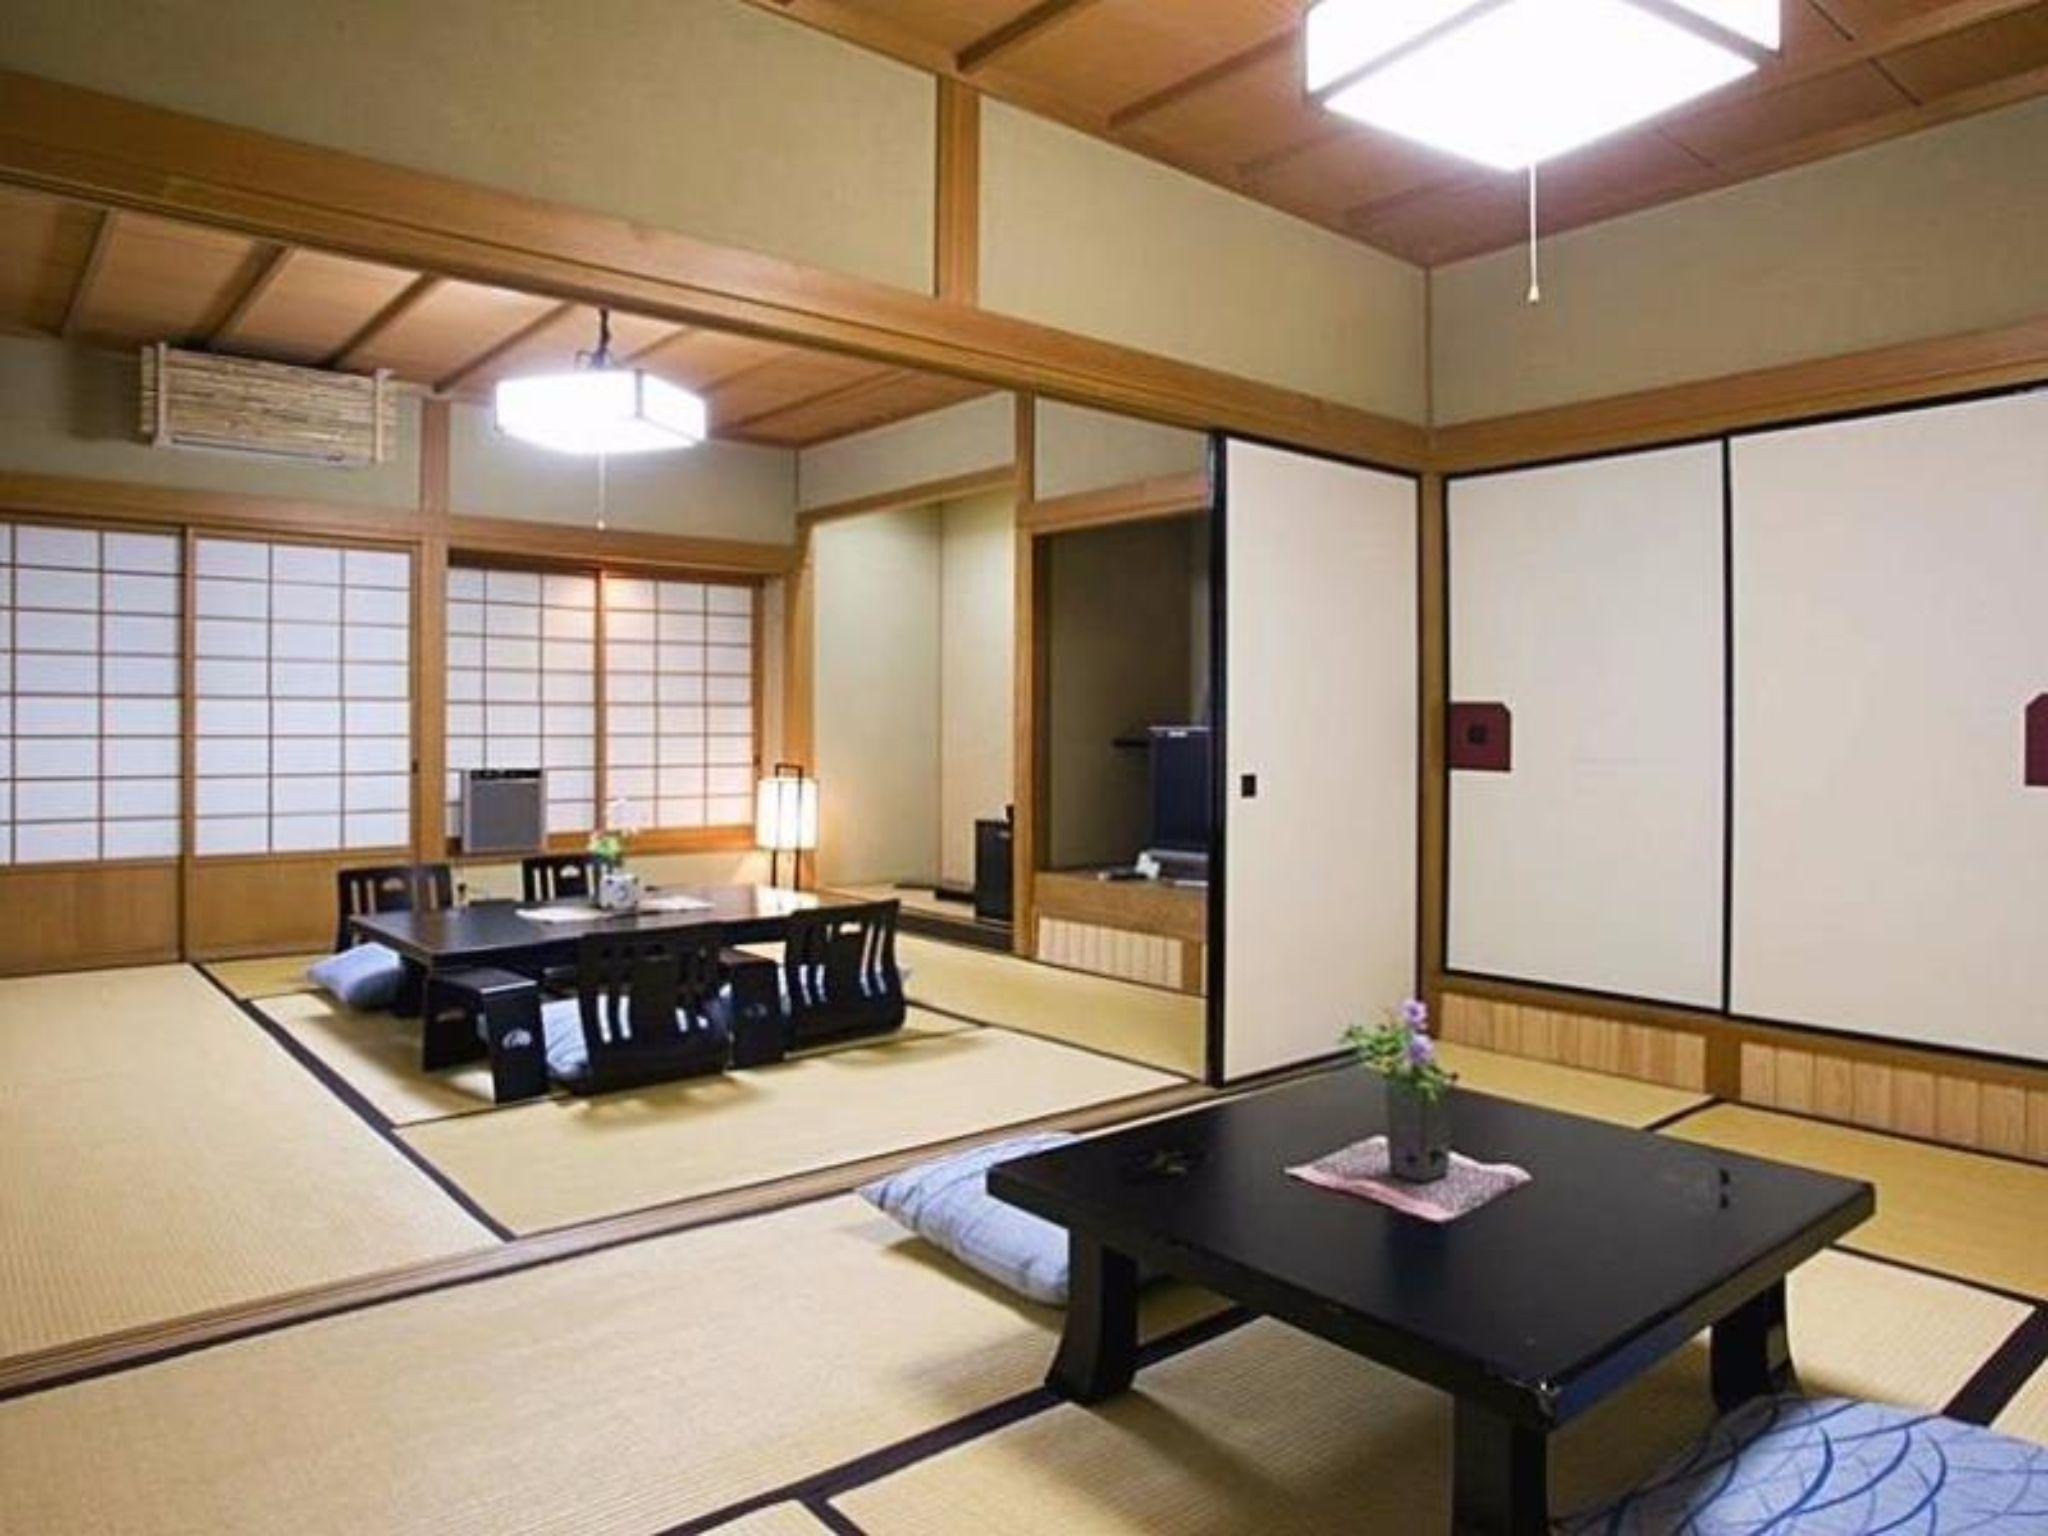 スーペリア 和室 露天風呂付 (Superior Japanese-Style Room with Open-Air Bath)